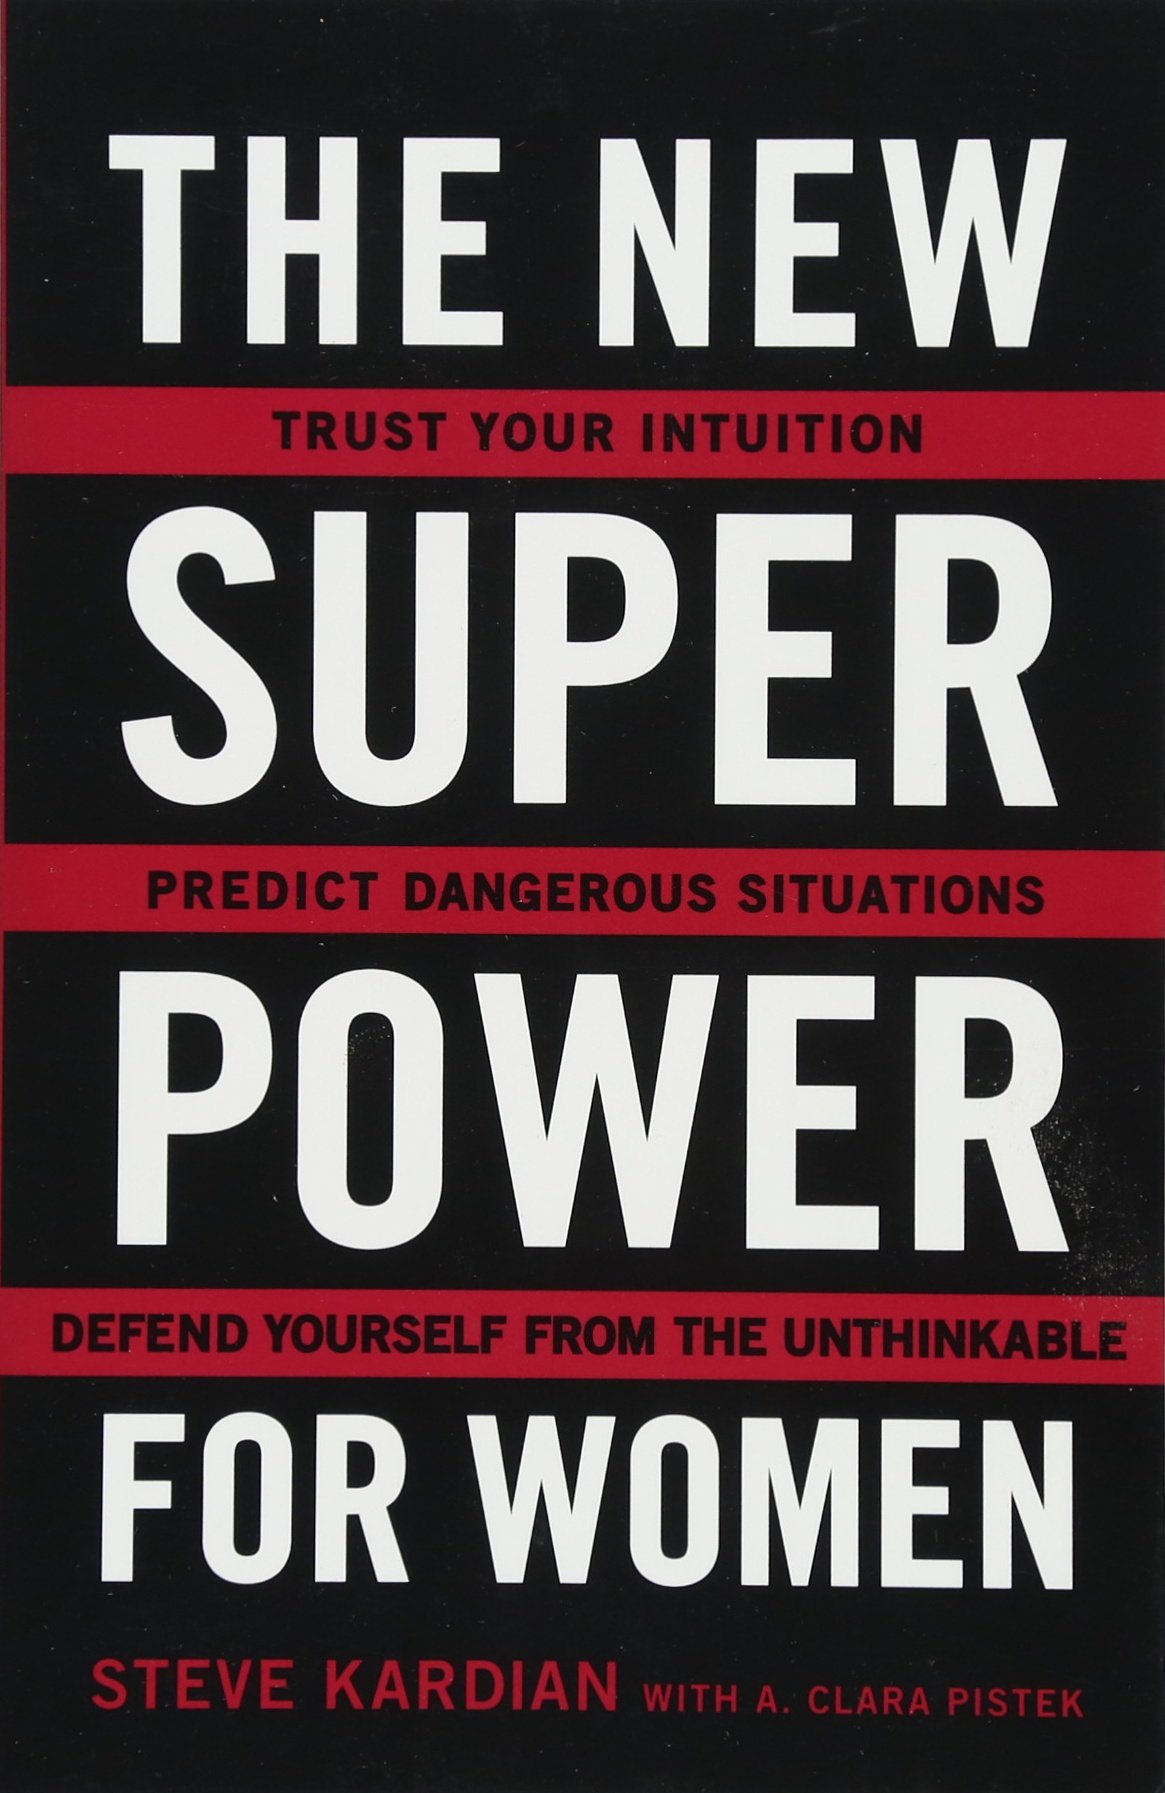 The New Superpower for Women: Trust Your Intuition, Predict Dangerous Situations, and Defend Yourself from the Unthinkable by Touchstone